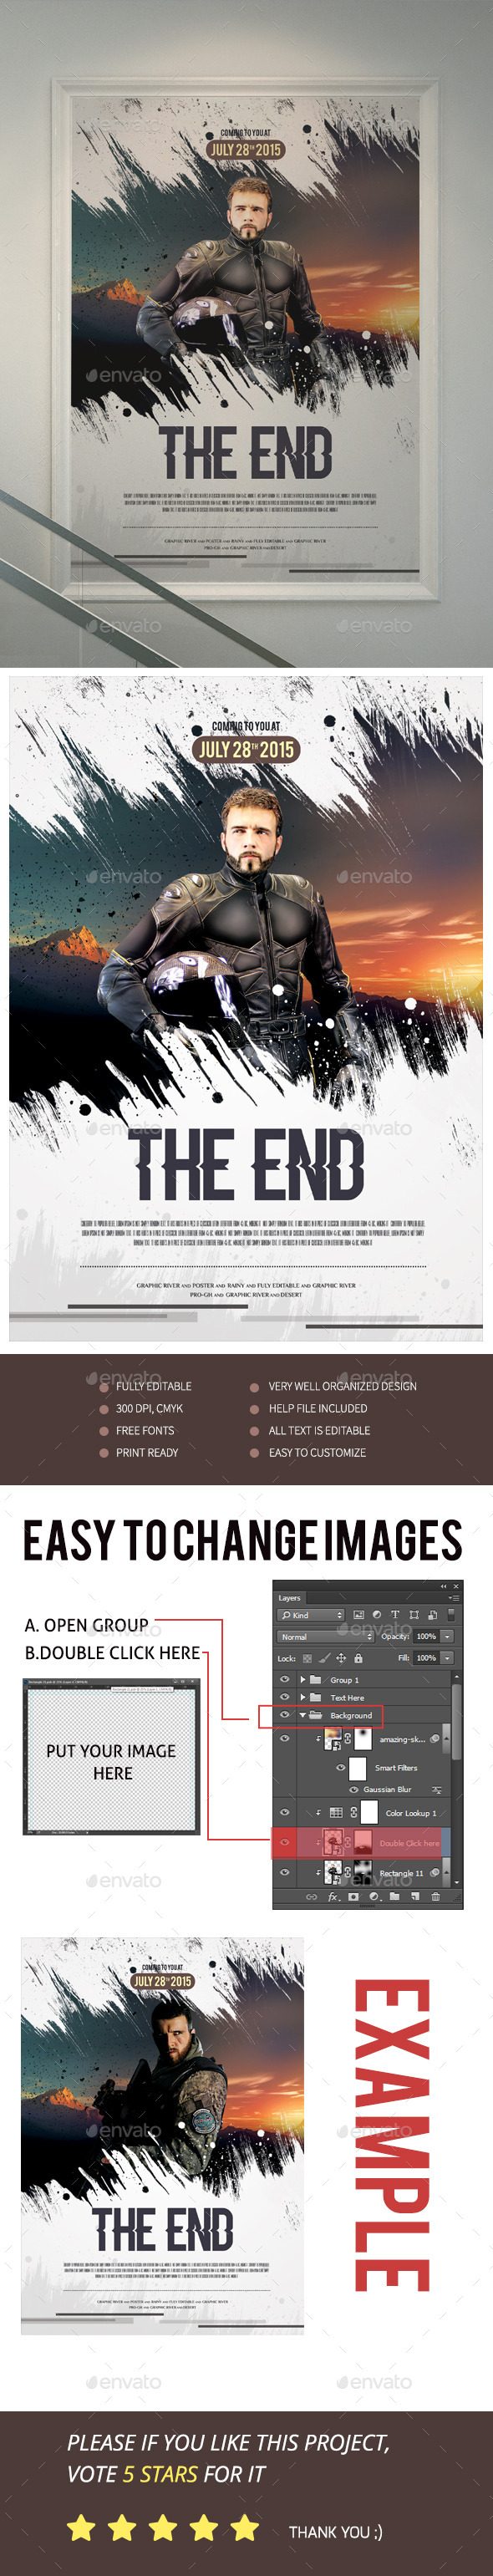 The End Movie Poster/Flyer III - Events Flyers